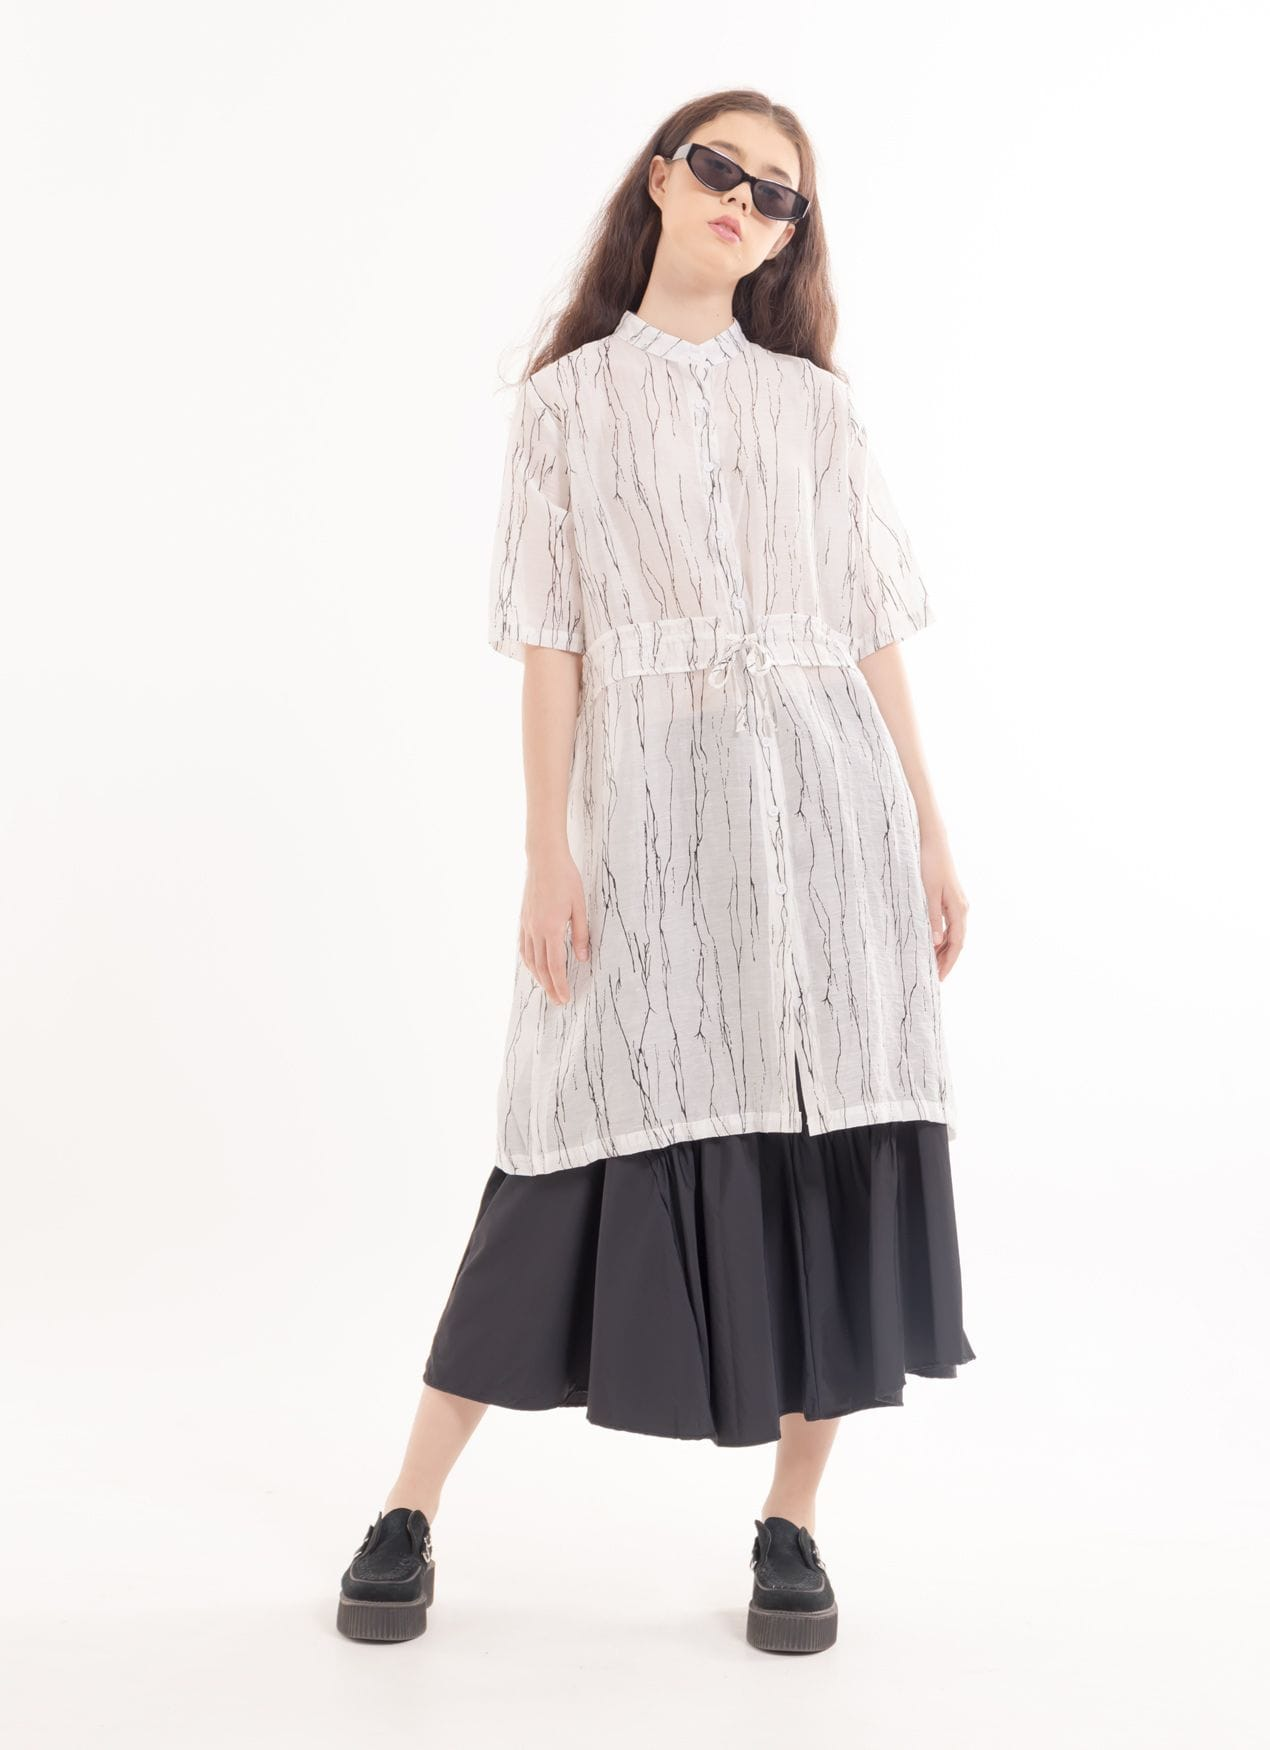 BOWN Bastion Dress - White